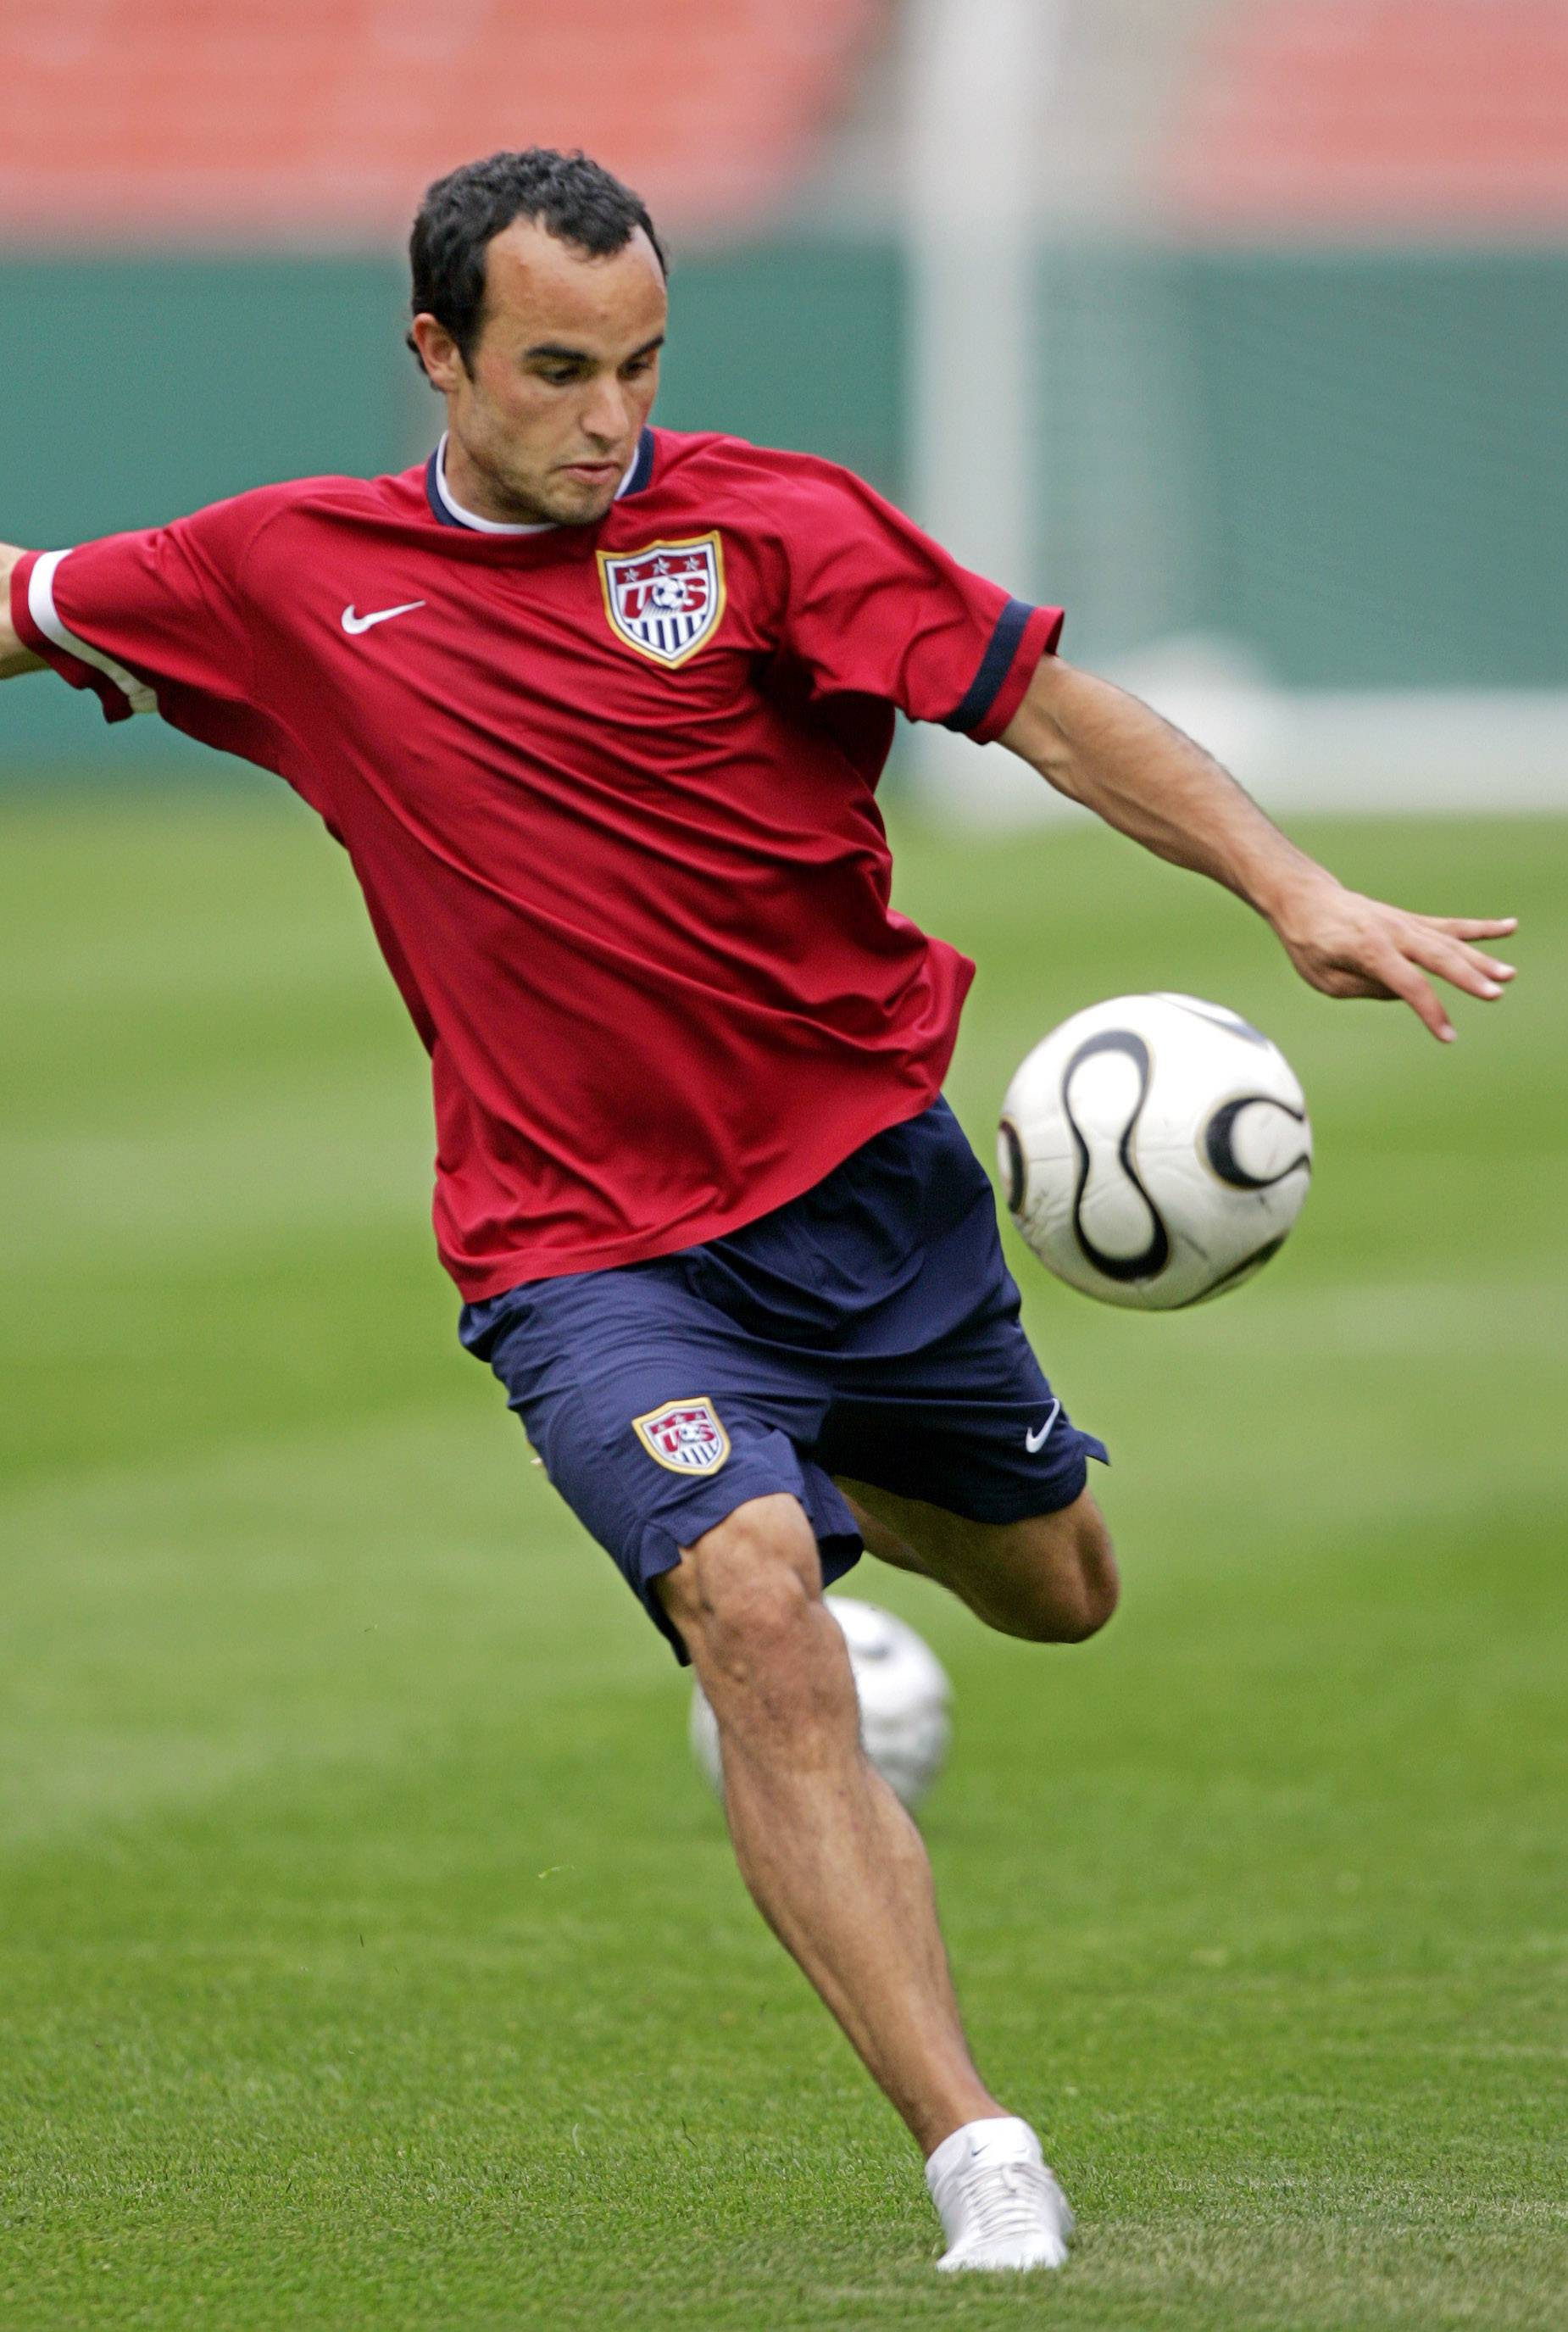 United States midfielder Landon Donovan takes a shot during practice at Cleveland Browns Stadium Thursday, May 25, 2006, in Cleveland. The USA plays Venezuela in a friendly match Friday night in preparation for the 2006 World Cup. (AP Photo/Mark Duncan)